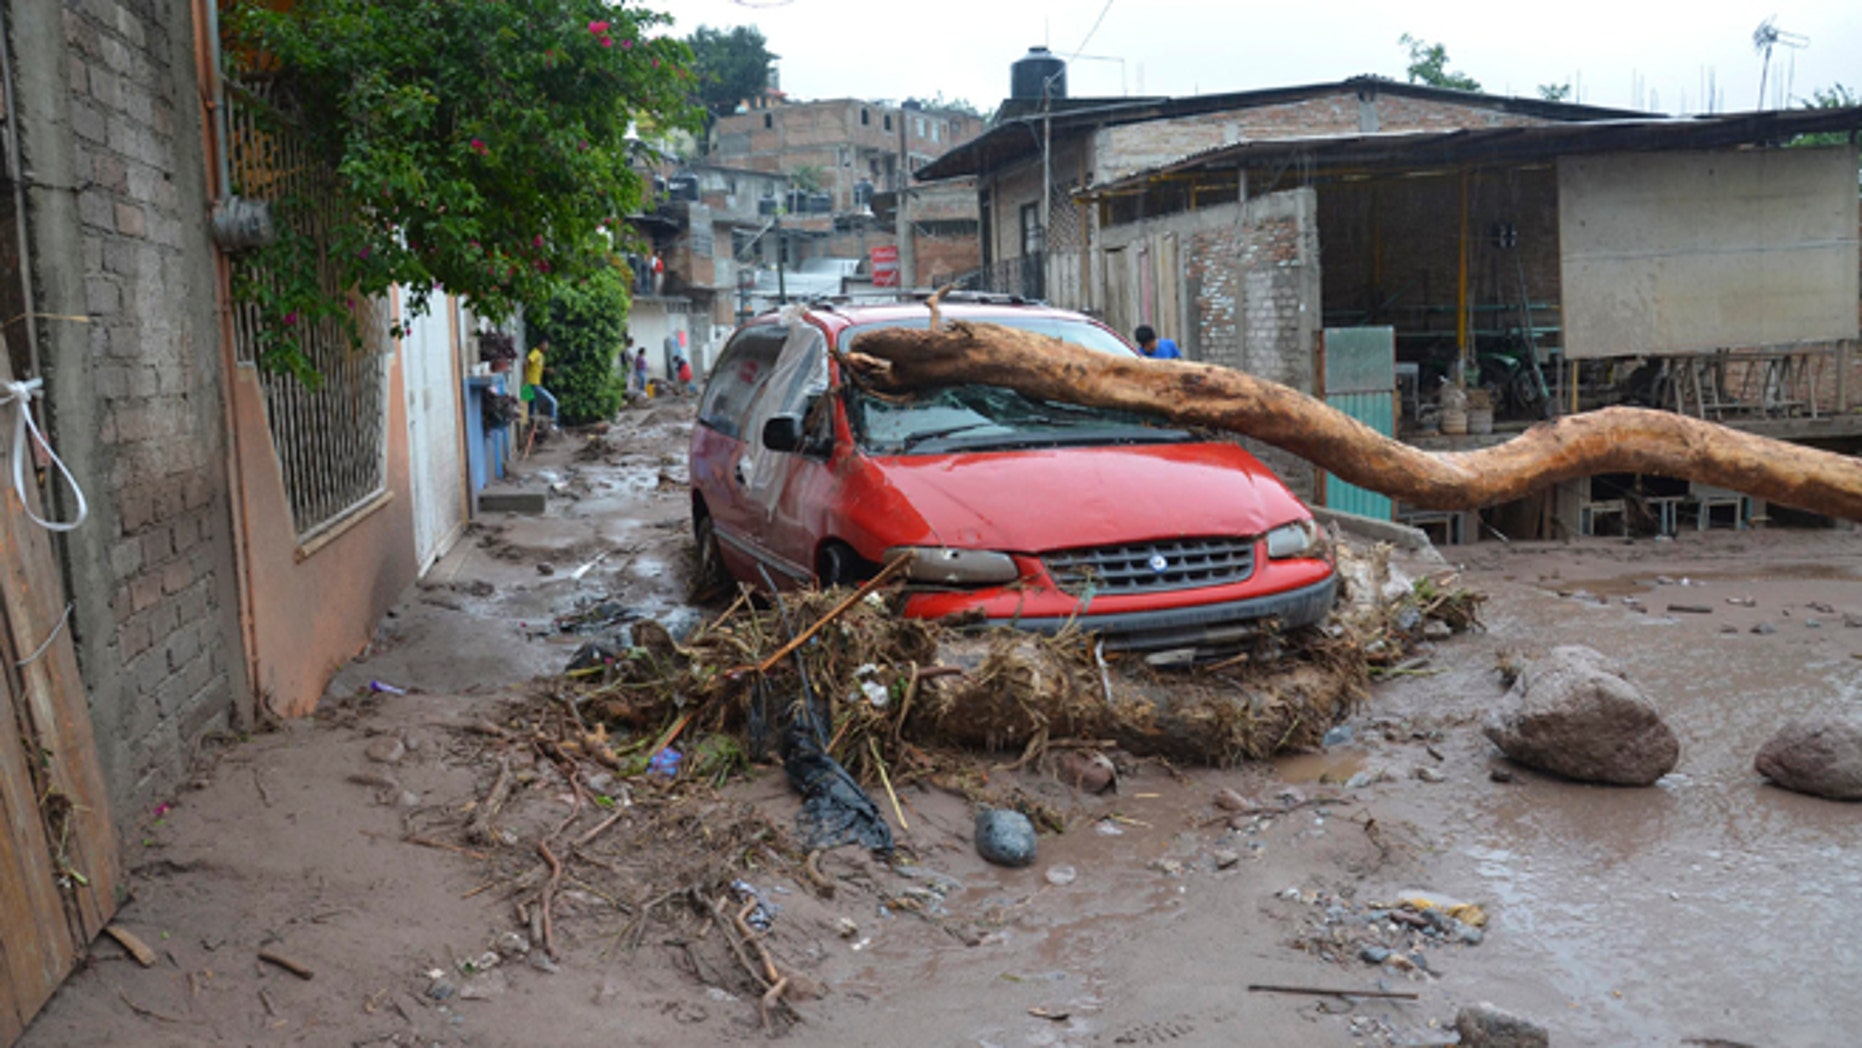 A damaged vehicle stands in the middle of a road after a landslide caused by heavy rains came down on a low income neighborhood in the city of Chilpancingo, Mexico, Monday Sept. 16, 2013.  Tropical Storm Ingrid and remnants of Tropical Storm Manuel drench Mexico's Gulf and Pacific coasts, flooding towns and cities in a national emergency that federal authorities say has caused at least 34 deaths. (AP Photo/Alejandrino Gonzalez)